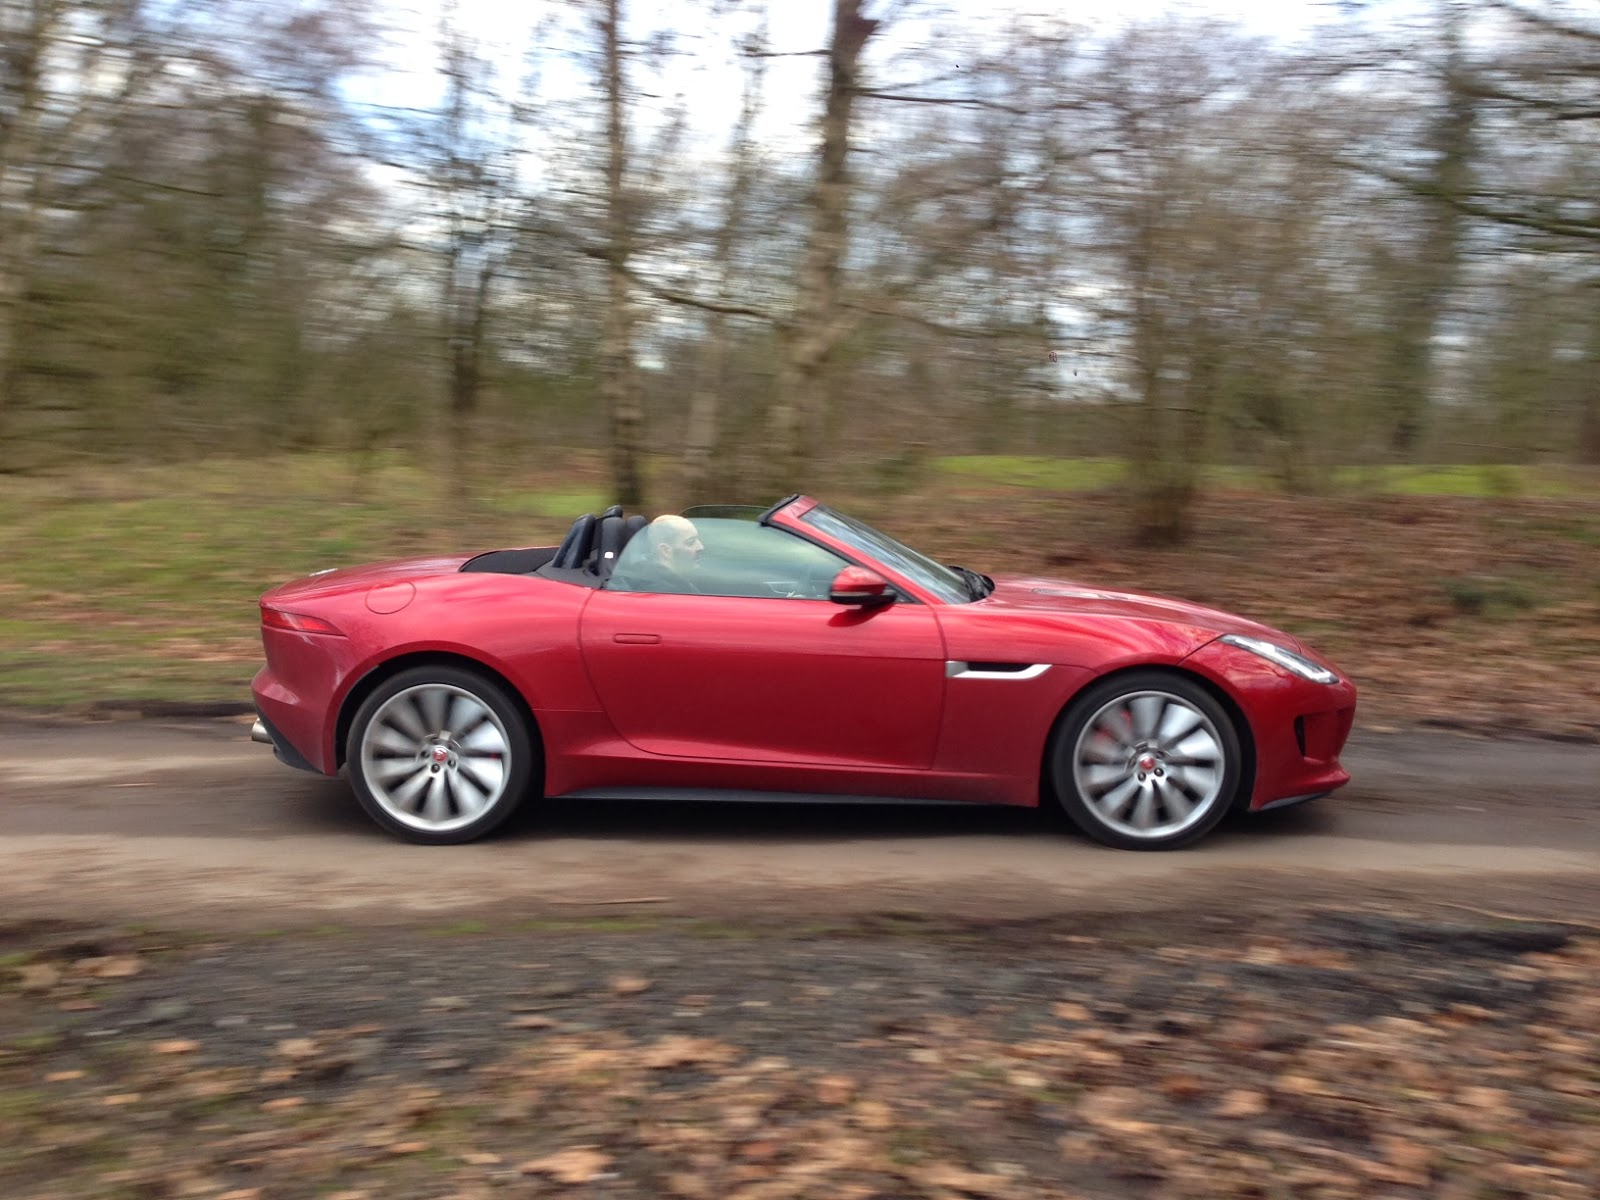 2014 Jaguar F-Type V8 S Convertible in Italian Racing Red